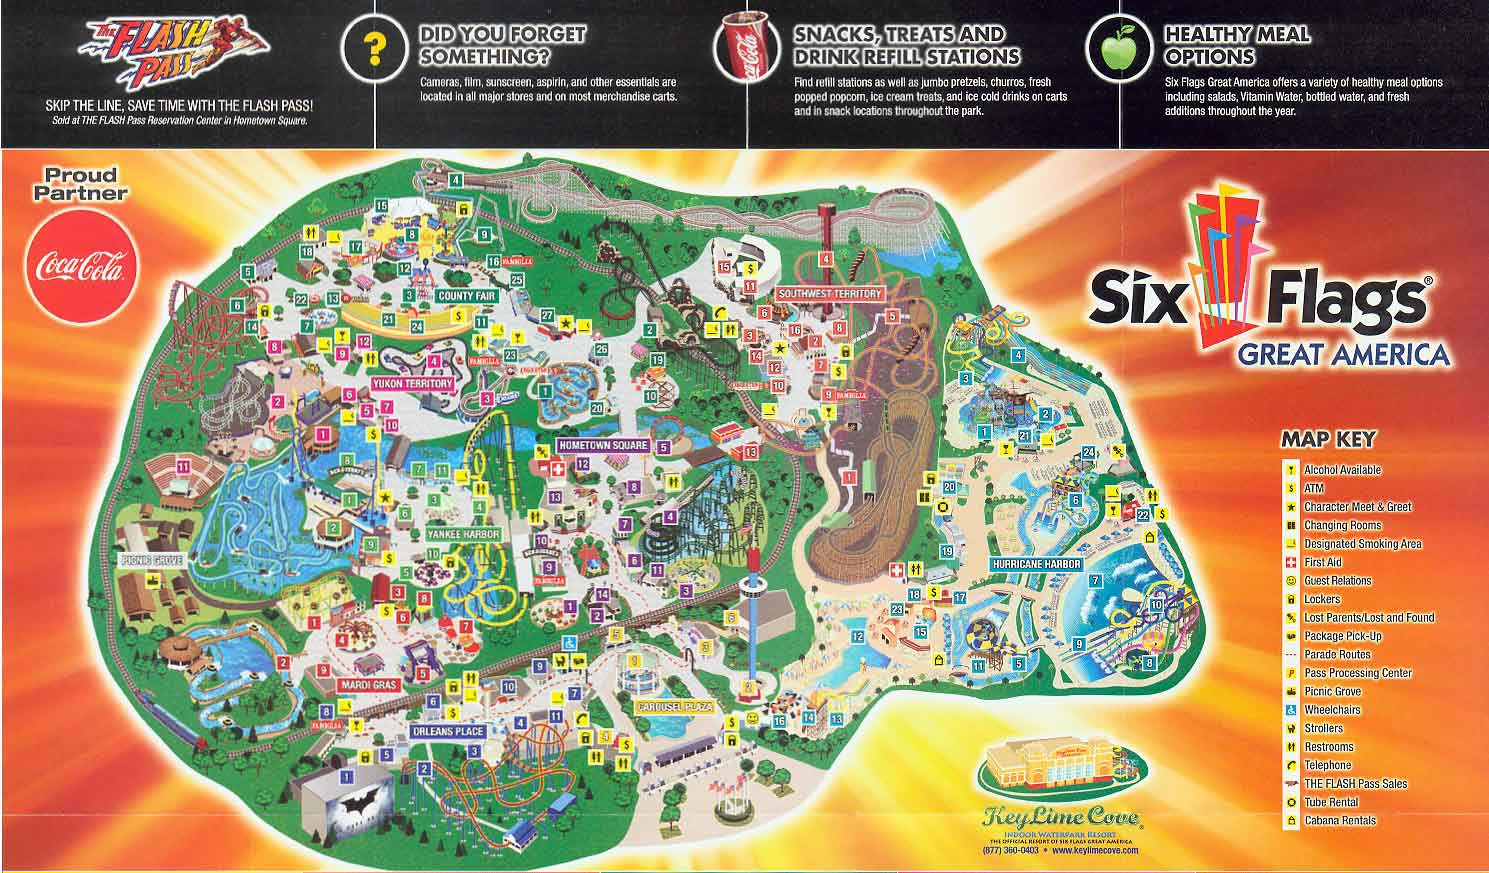 Six Flags Chicago Map Six Flags Great America 2011 Map